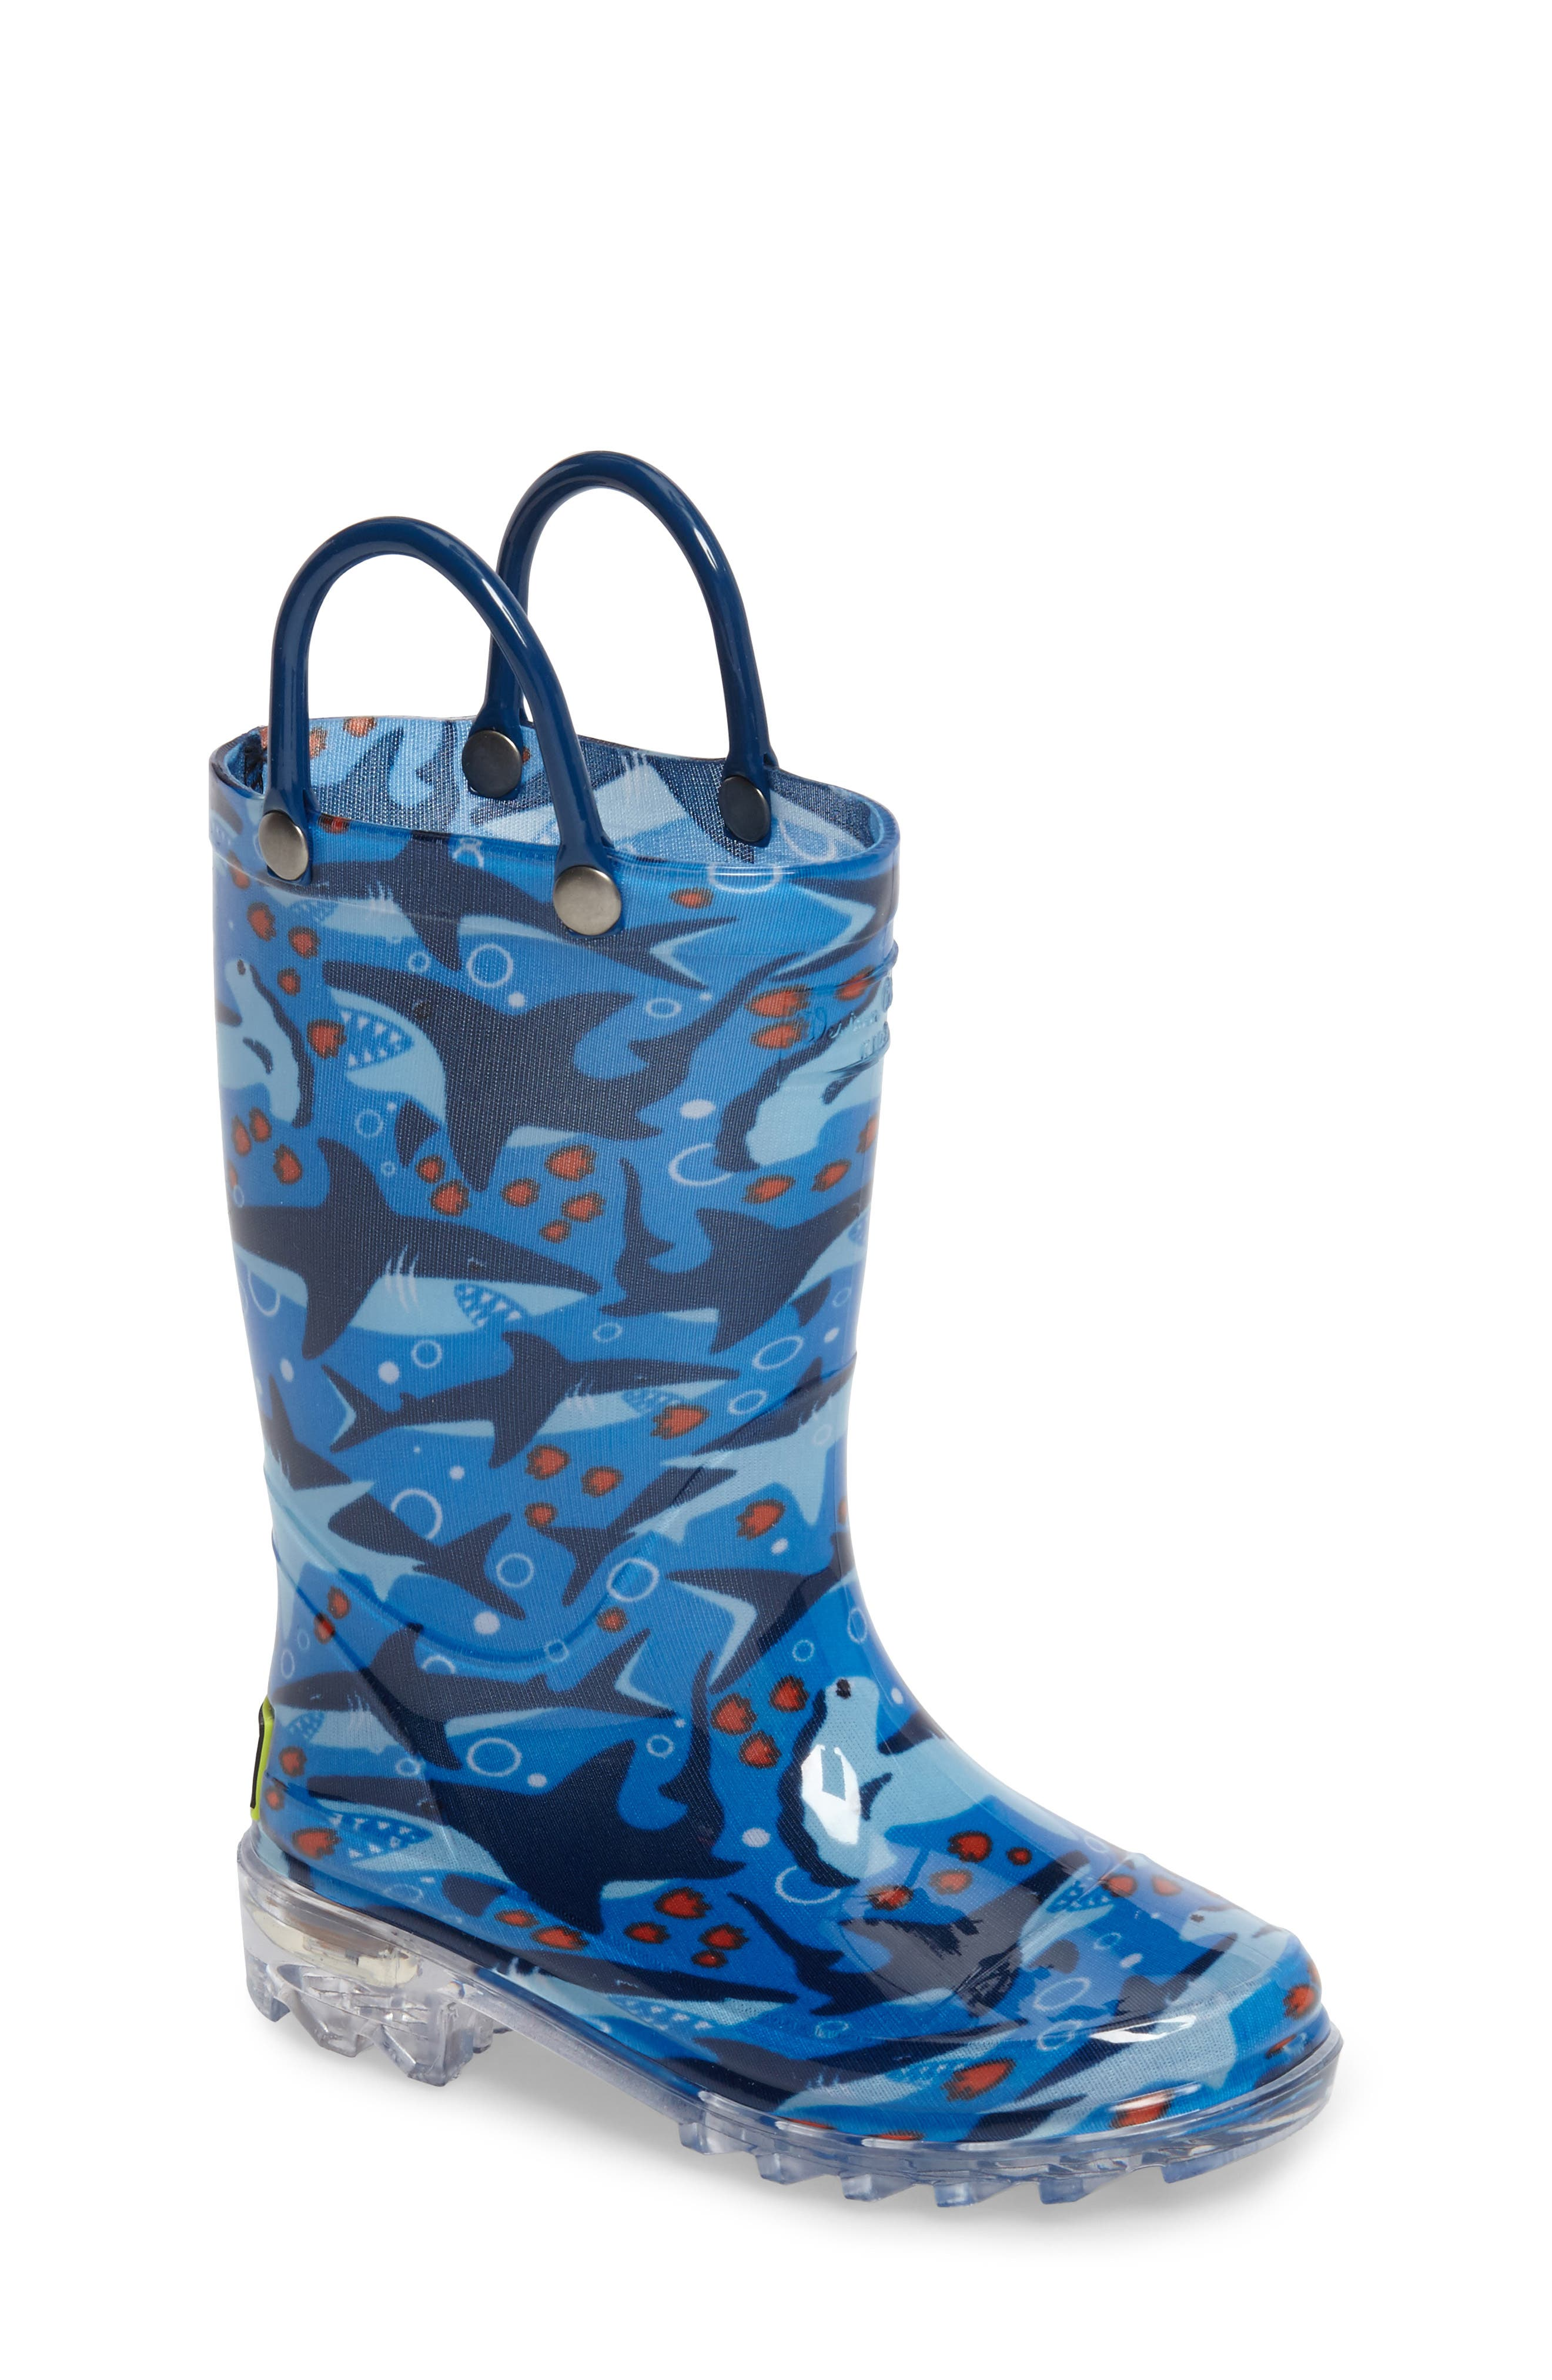 Main Image - Western Chief Shark Chase Light-Up Rain Boot (Toddler & Little Kid)